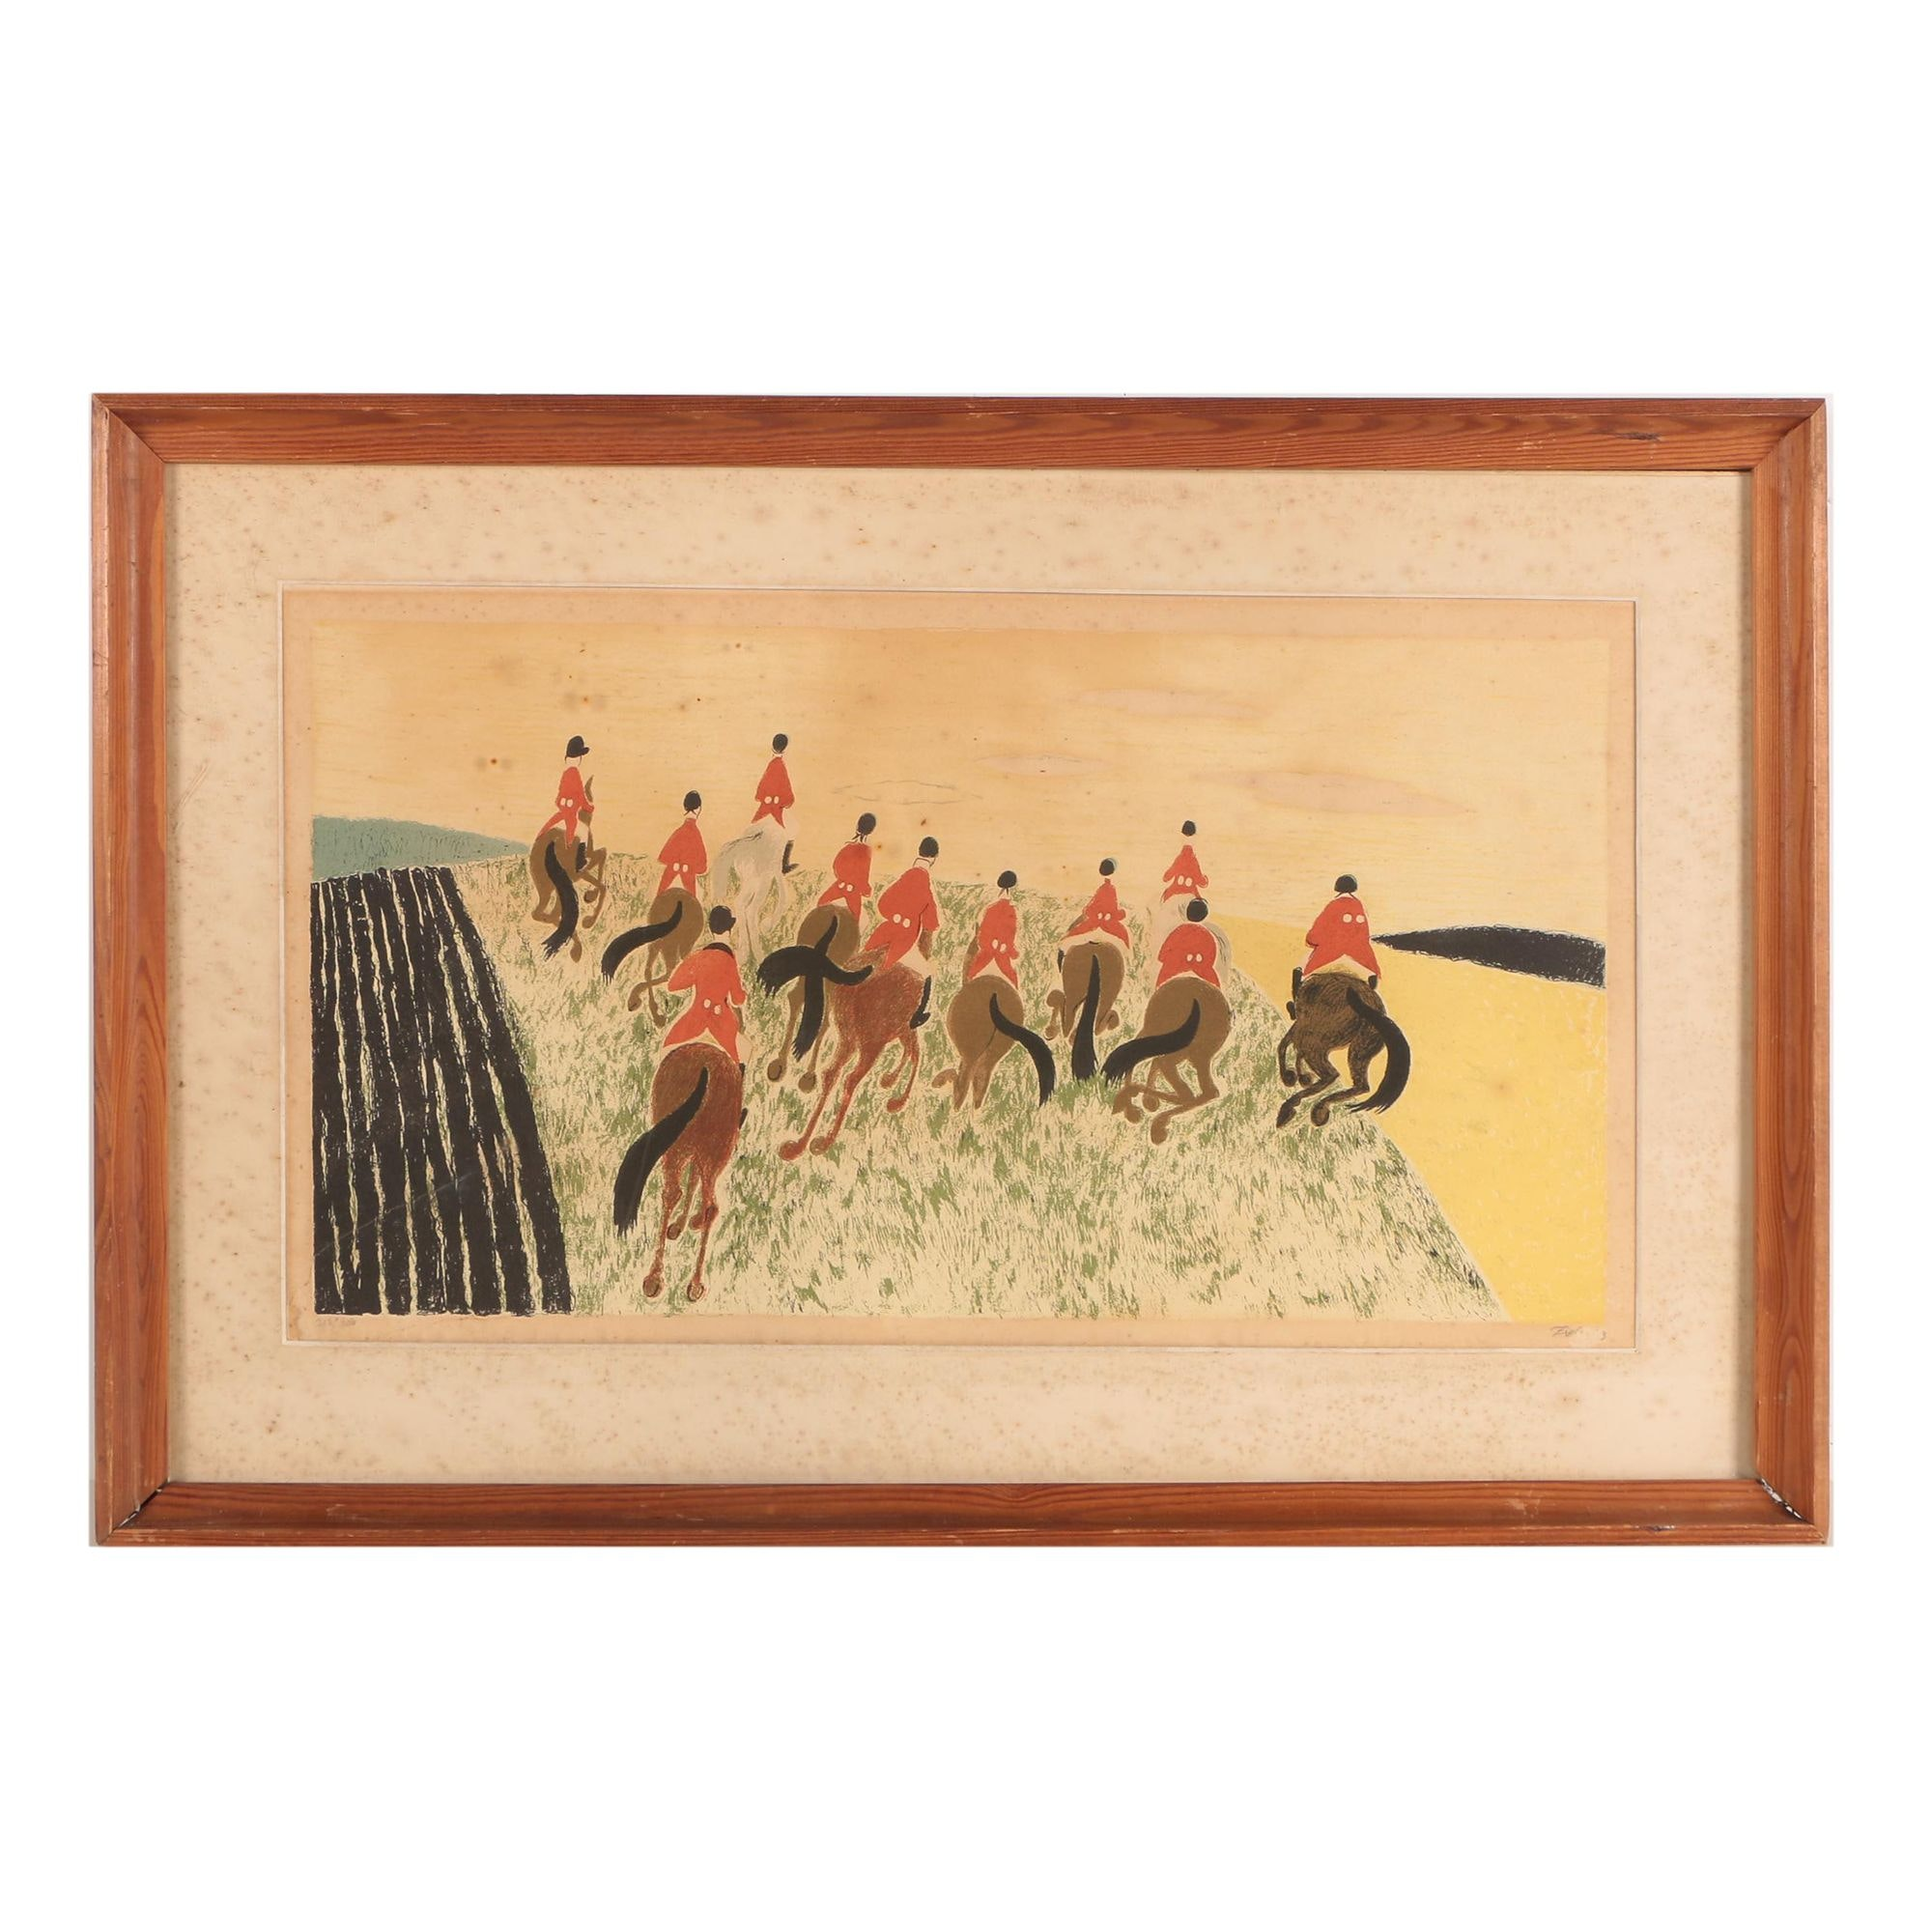 Mogens Zieler Limited Edition Lithograph of Hunting Scene